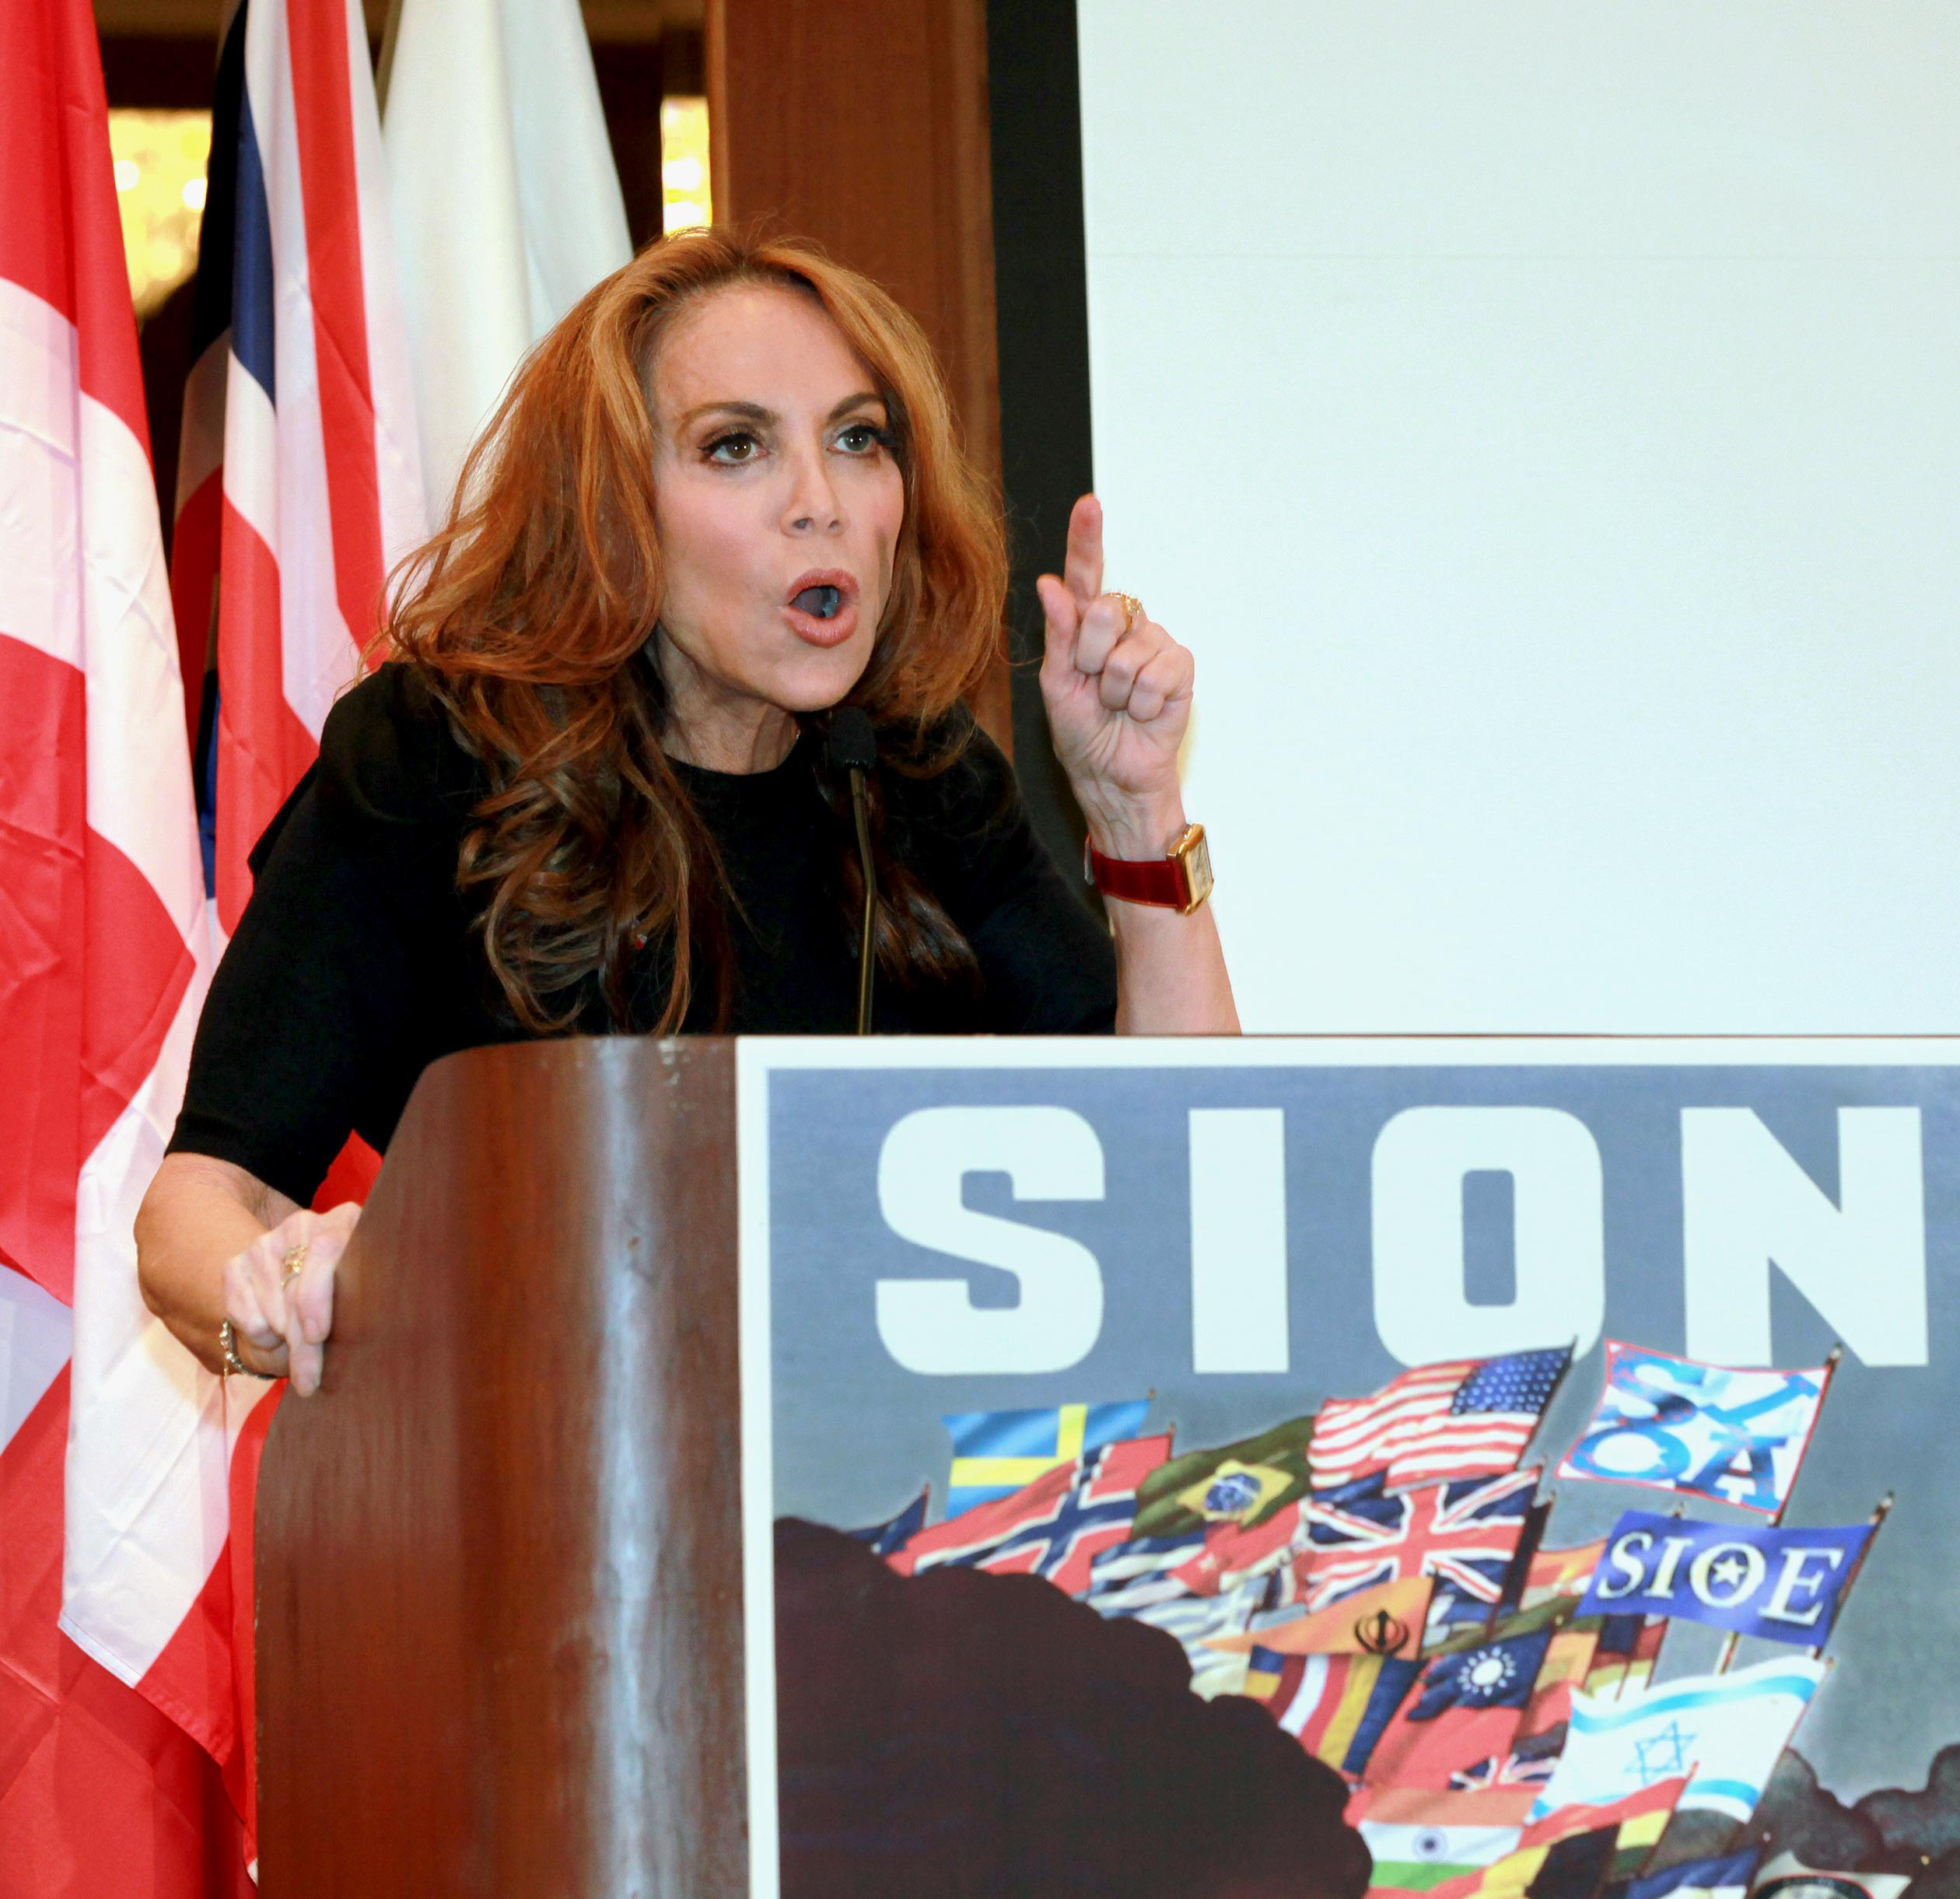 """In this Sept. 11, 2012 photo, anti-Islamic blogger Pamela Geller, speaks at a conference she organized entitled; """"Stop Islamization of America,"""" in New York. An advertising campaign initiated by Geller's group, """"The American Freedom Defense Initiative,"""" will have its ads that equate foes of Israel with """"savages"""" appearing in 10 New York City subway stations after a federal judge ordered the Metropolitan Transportation Authority to put them up. (AP Photo/David Karp)"""